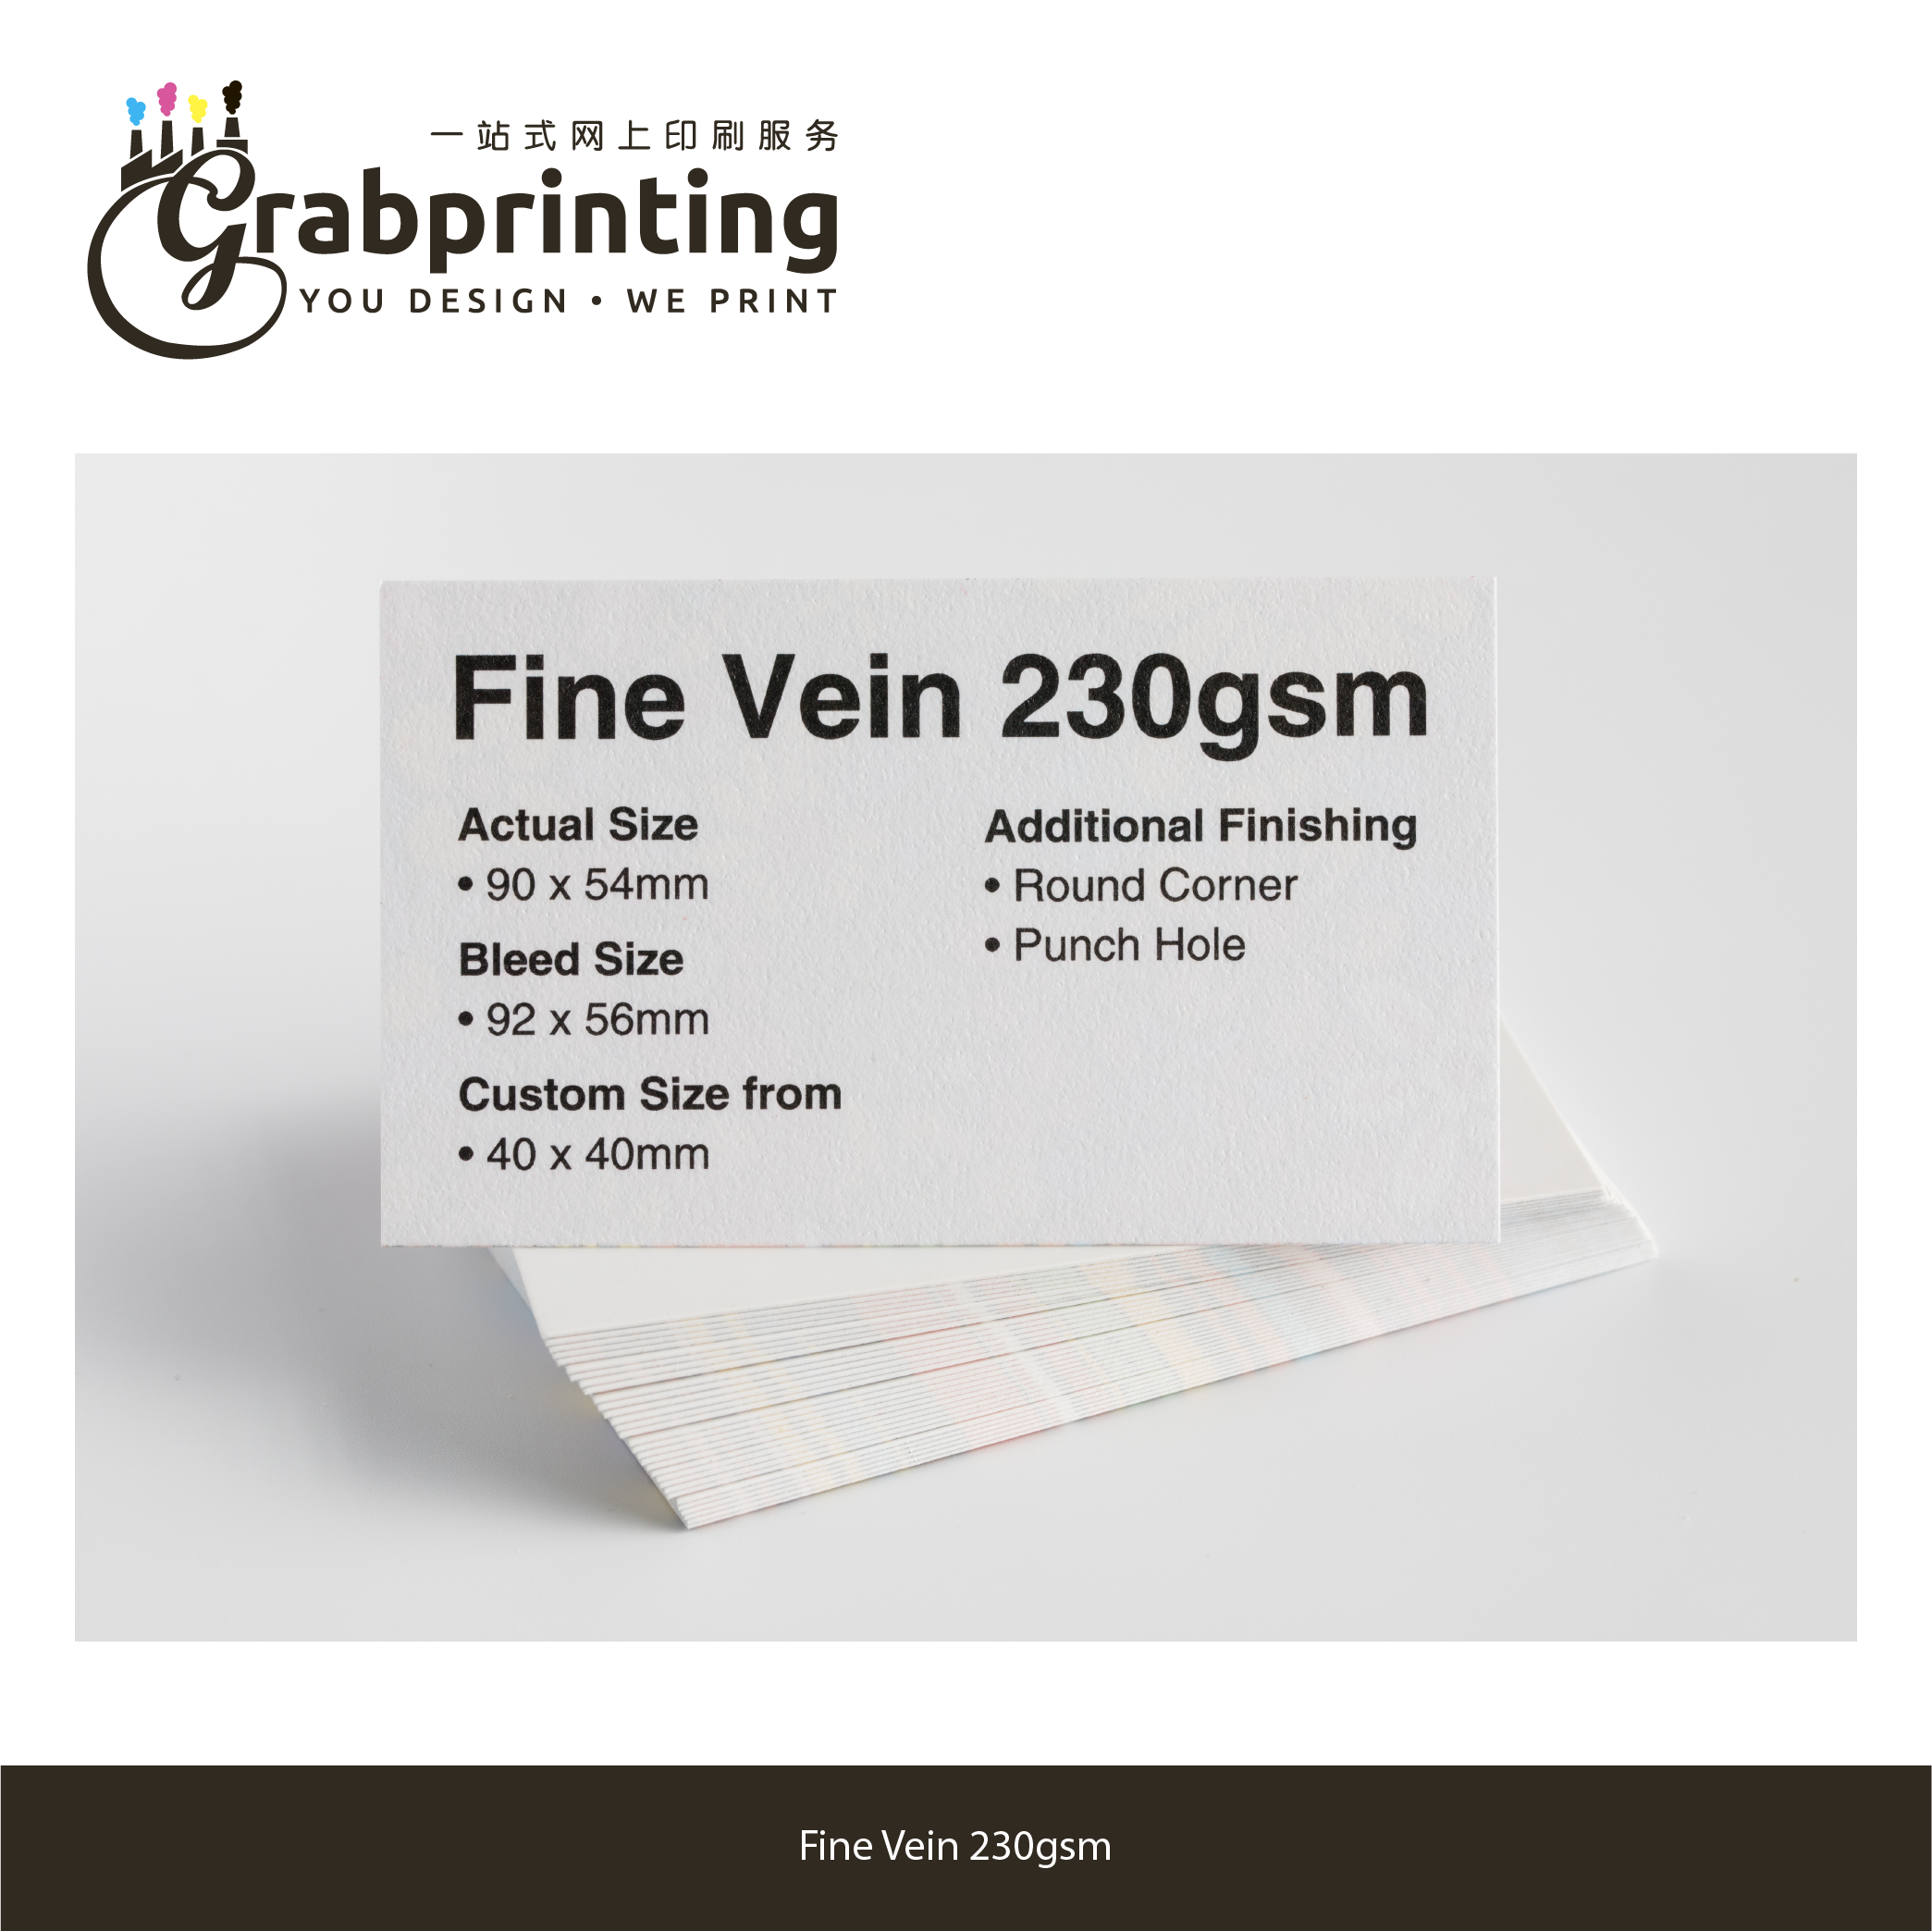 Name Card Sample Kit grabprinting 36 Fine Vein 230gsm 501px 501px